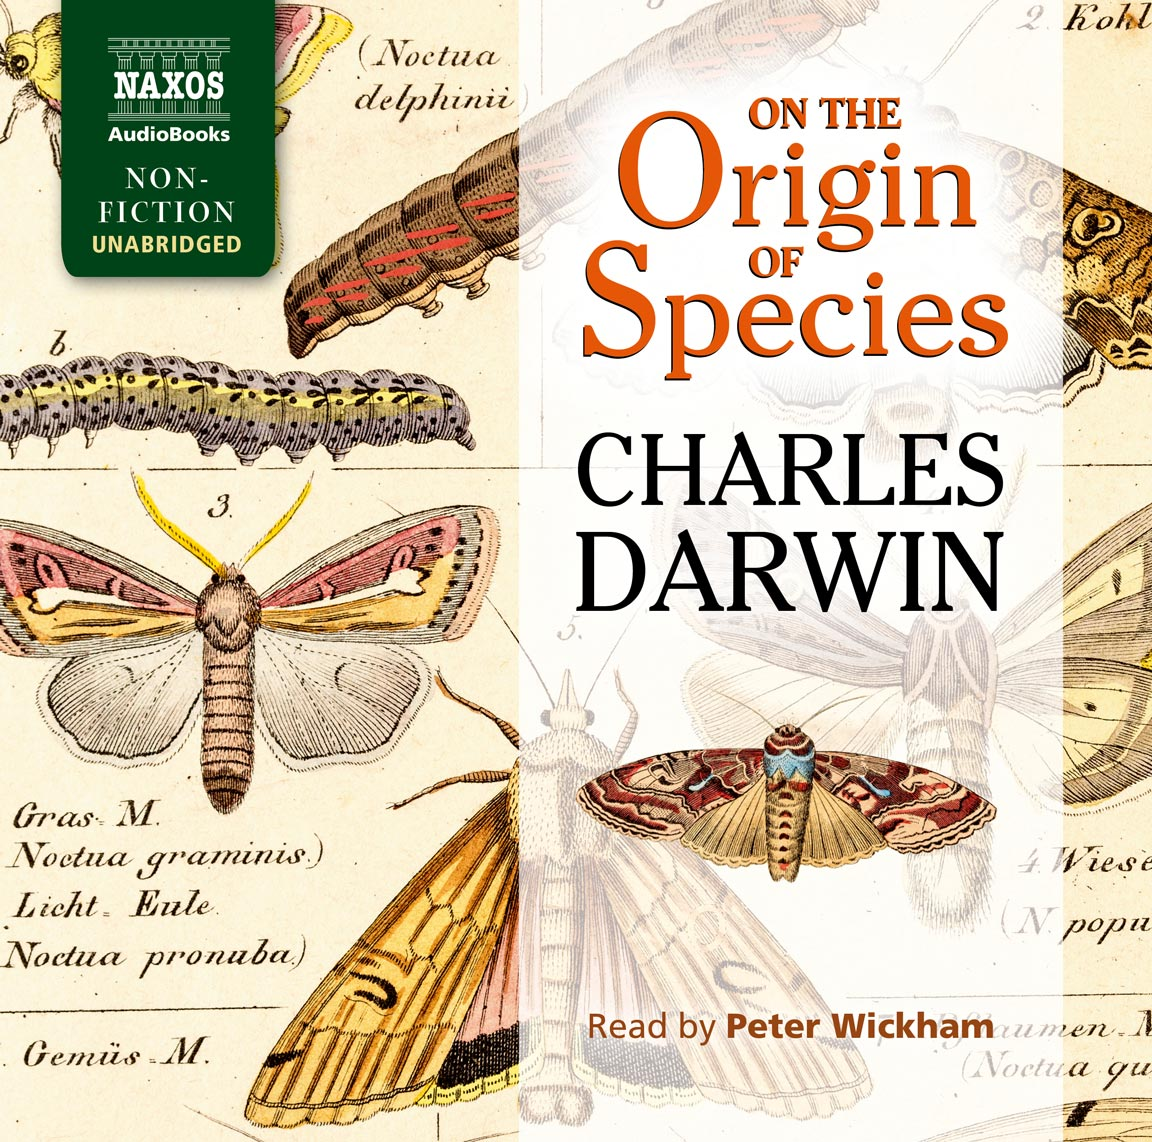 On the Origin of Species (unabridged)